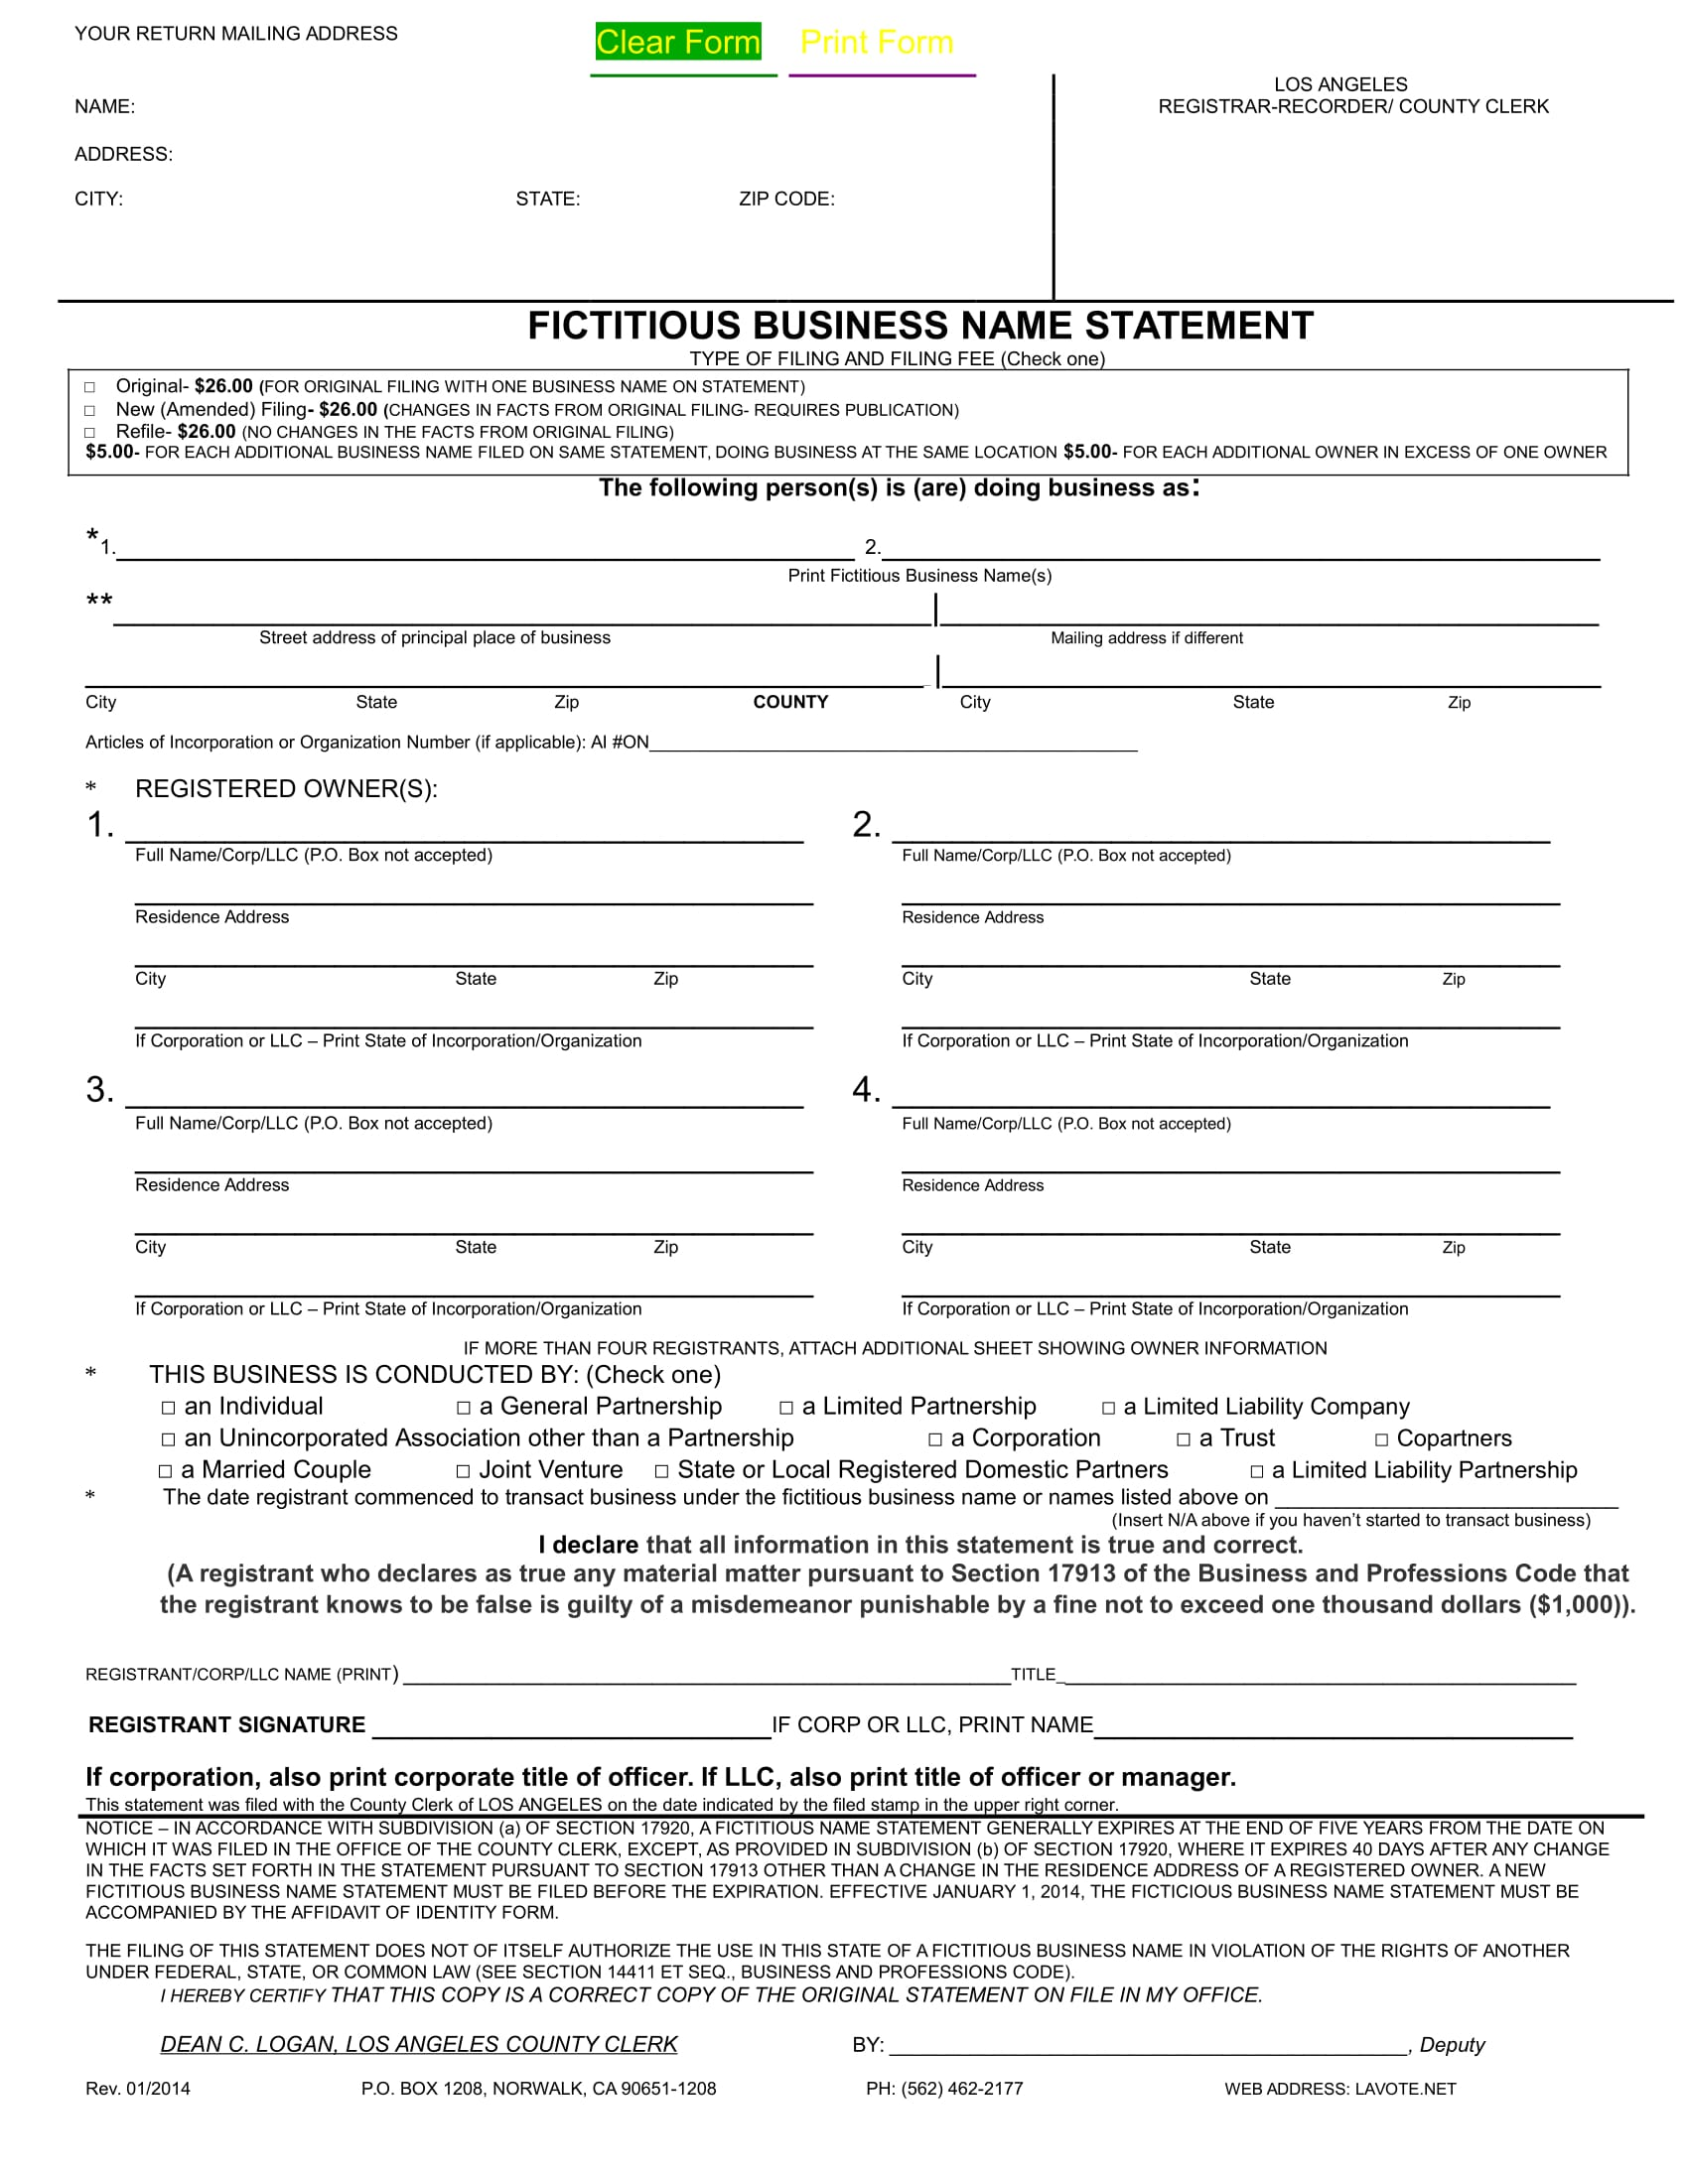 fictitious business name statement form 1